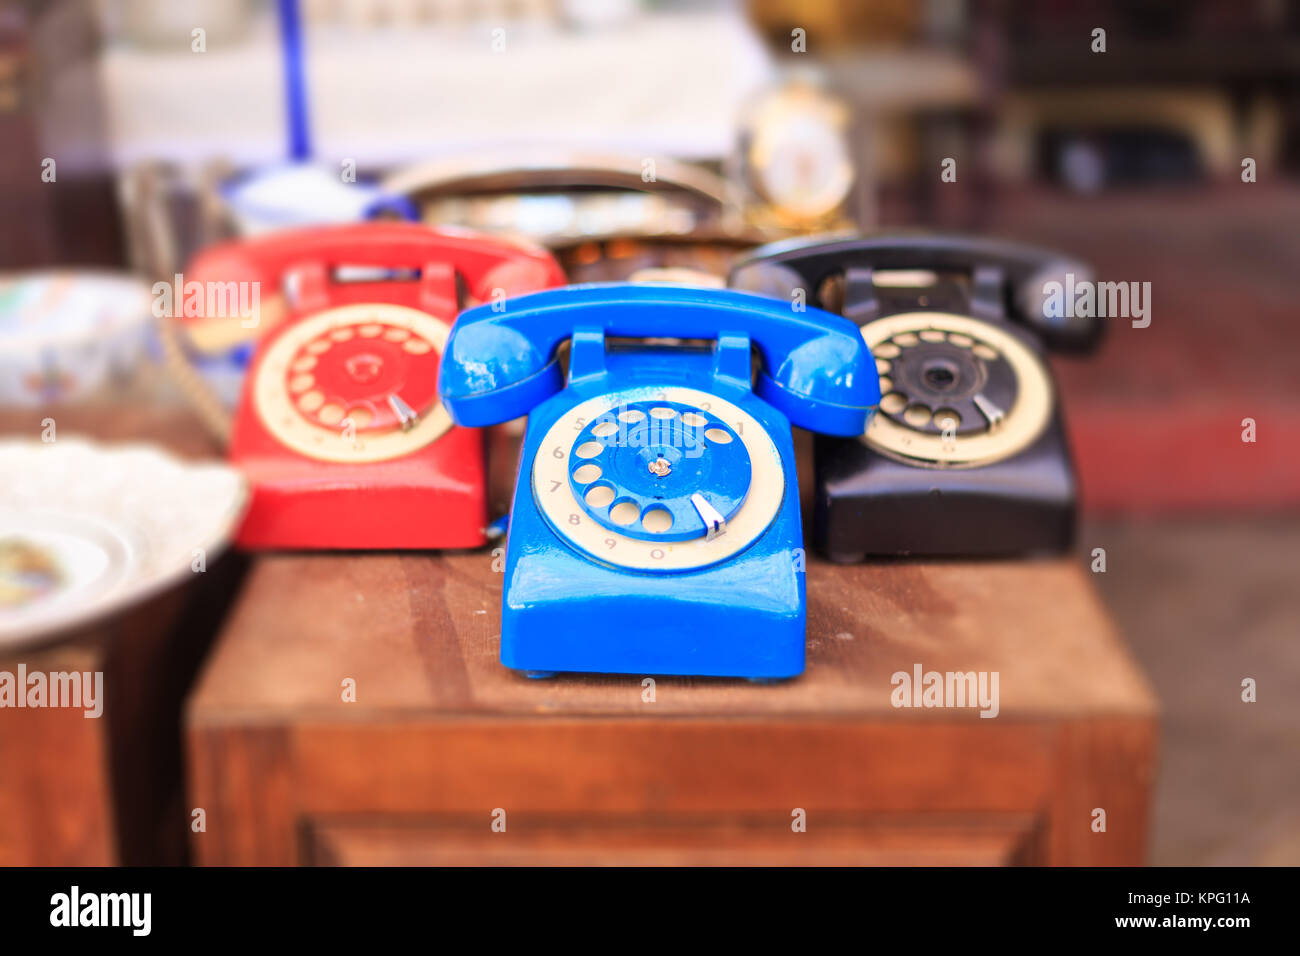 Athens, Greece. Vintage telephones collection at Monastiraki, an open air flea market - Stock Image